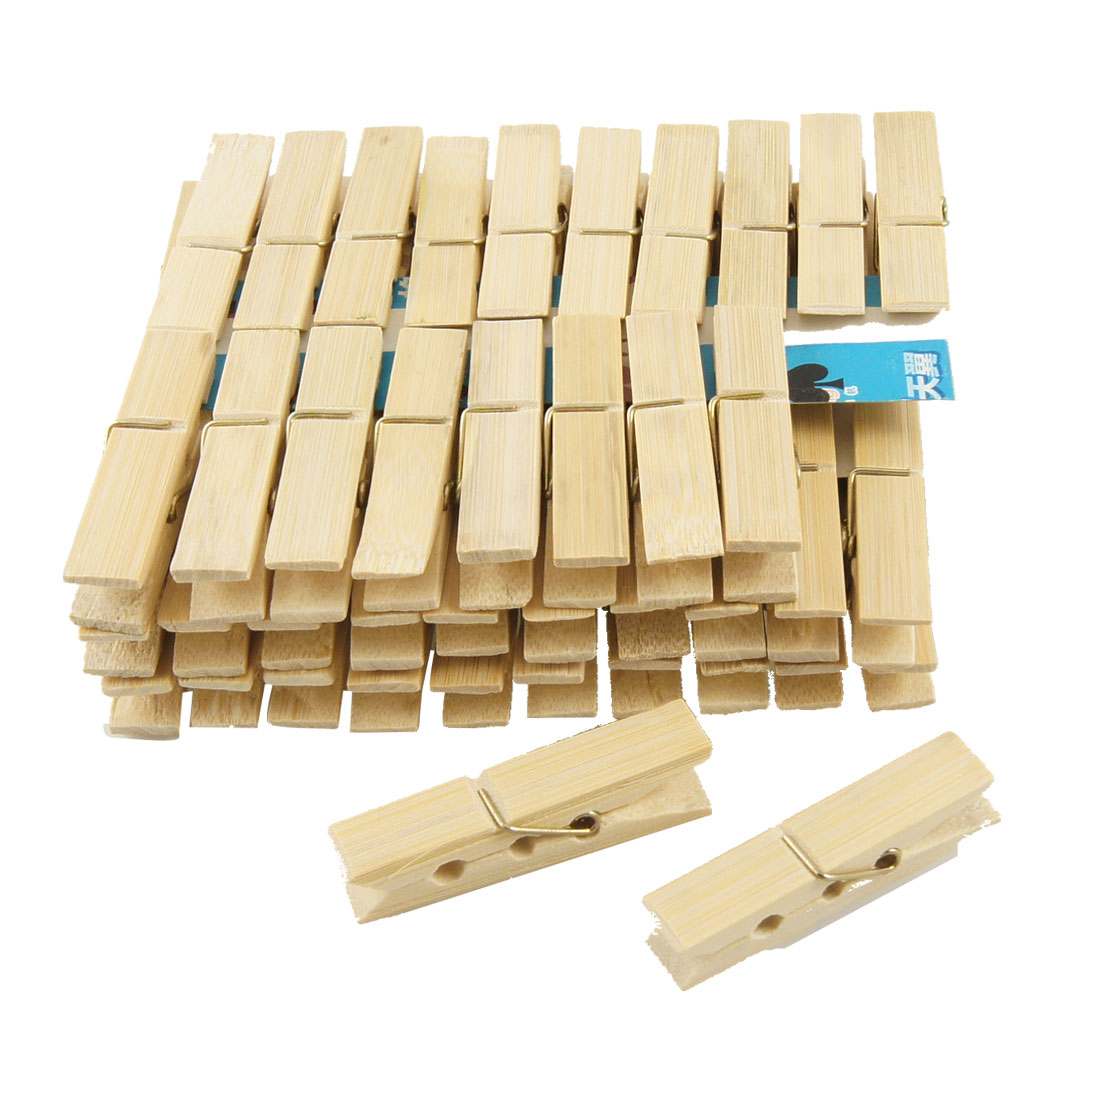 60 Pcs Laundry Natural Bamboo Clothes Pins Pegs Hanging Clips